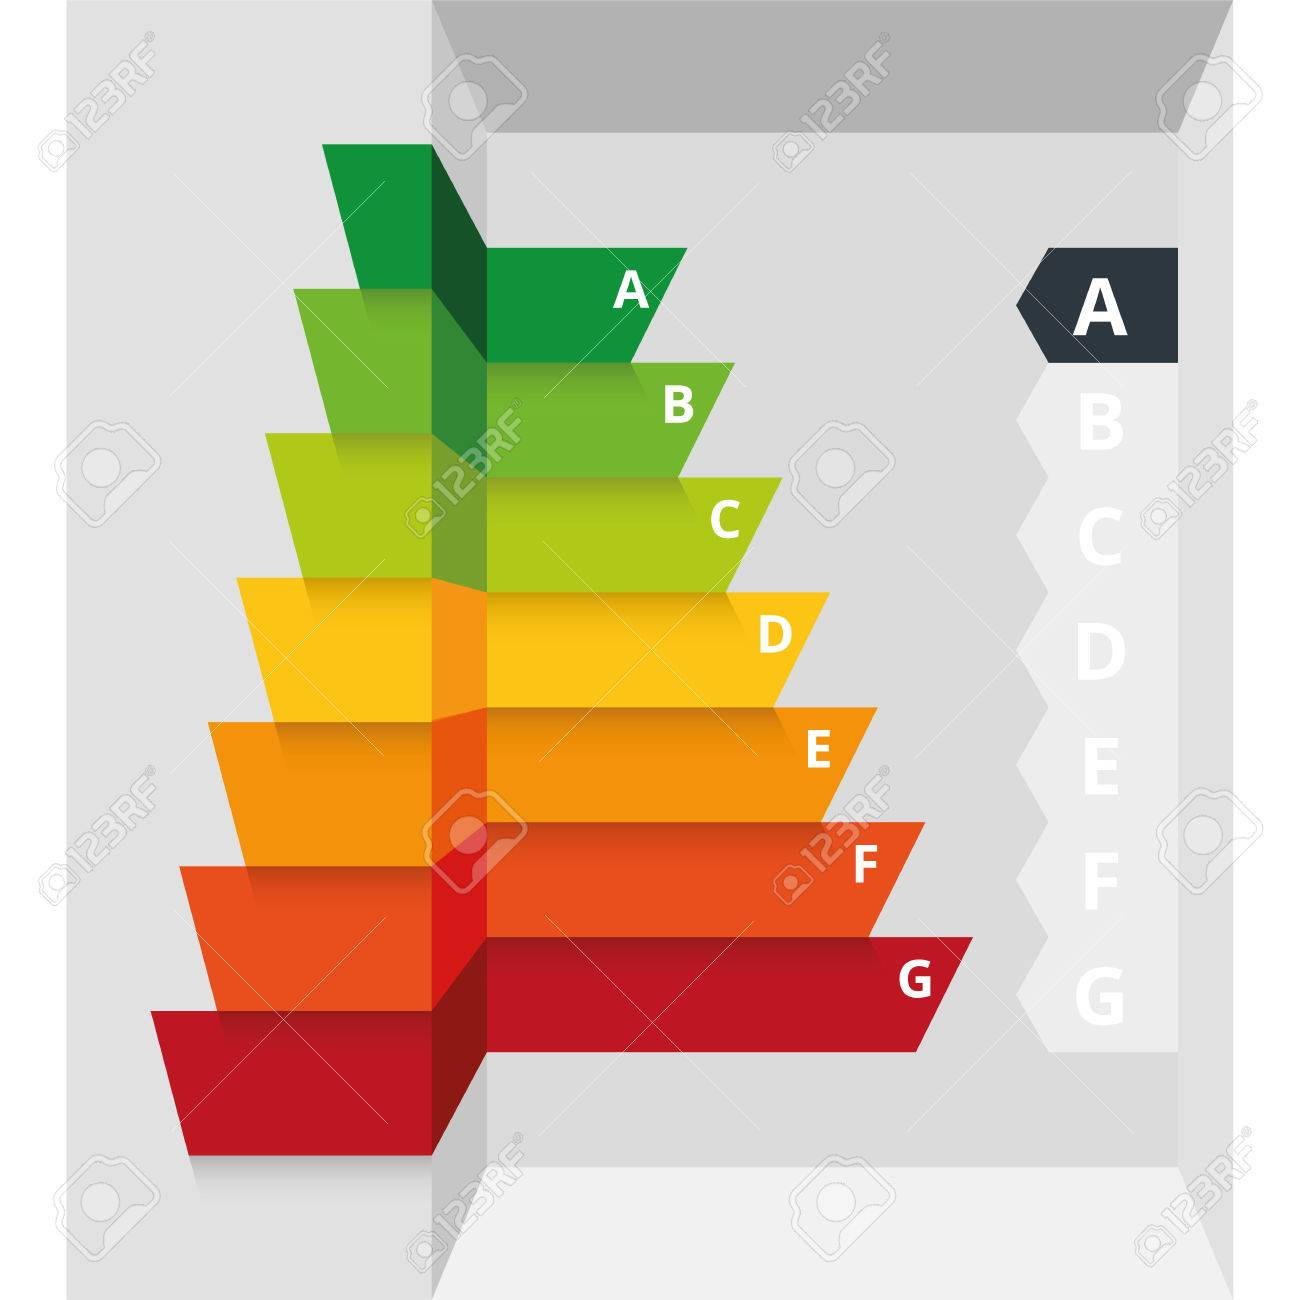 Simple Infographic Vector Illustration Of Energy Efficiency Classification  Certificate Class Suitable For House, Building,